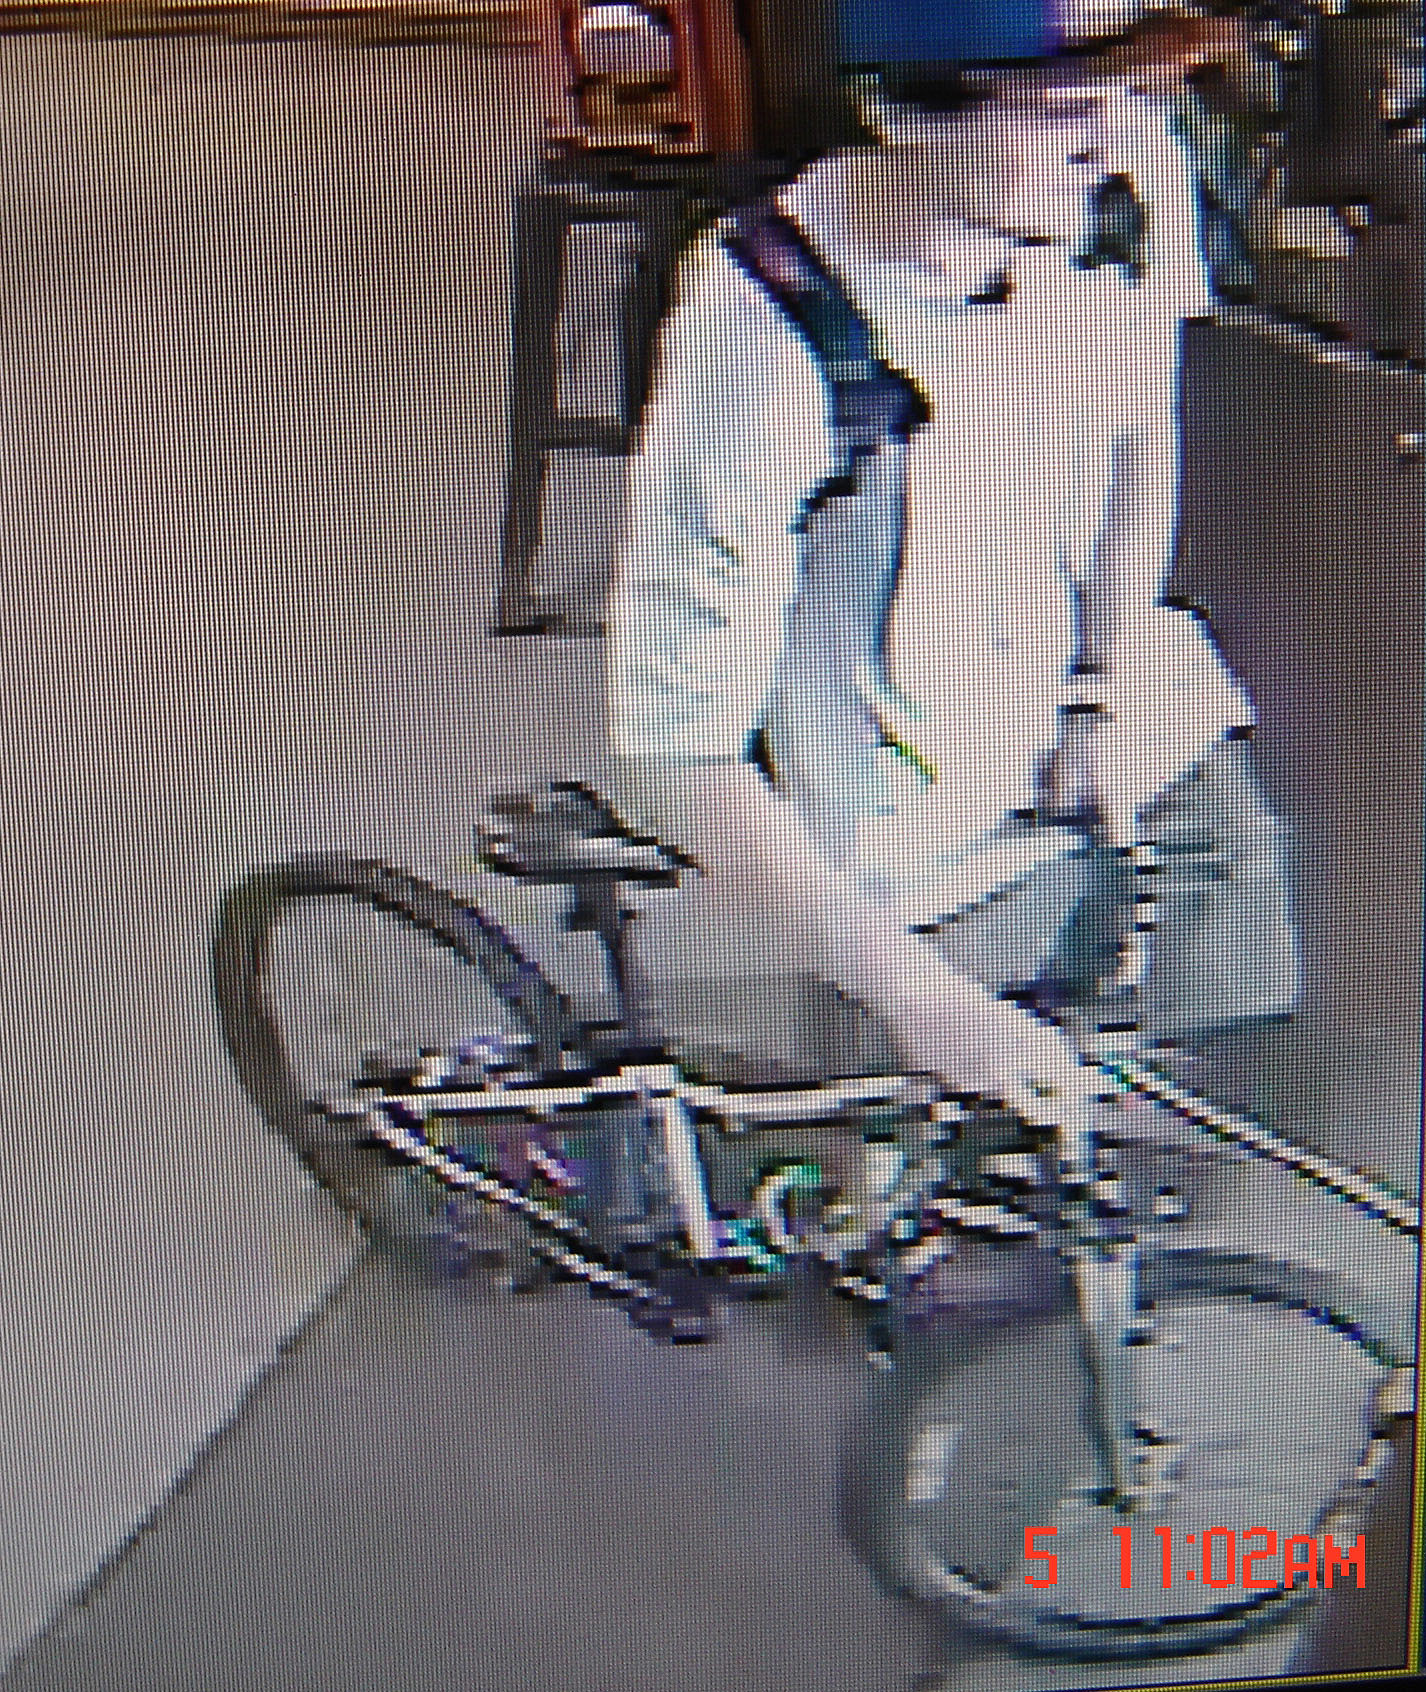 Stolen bike and suspect